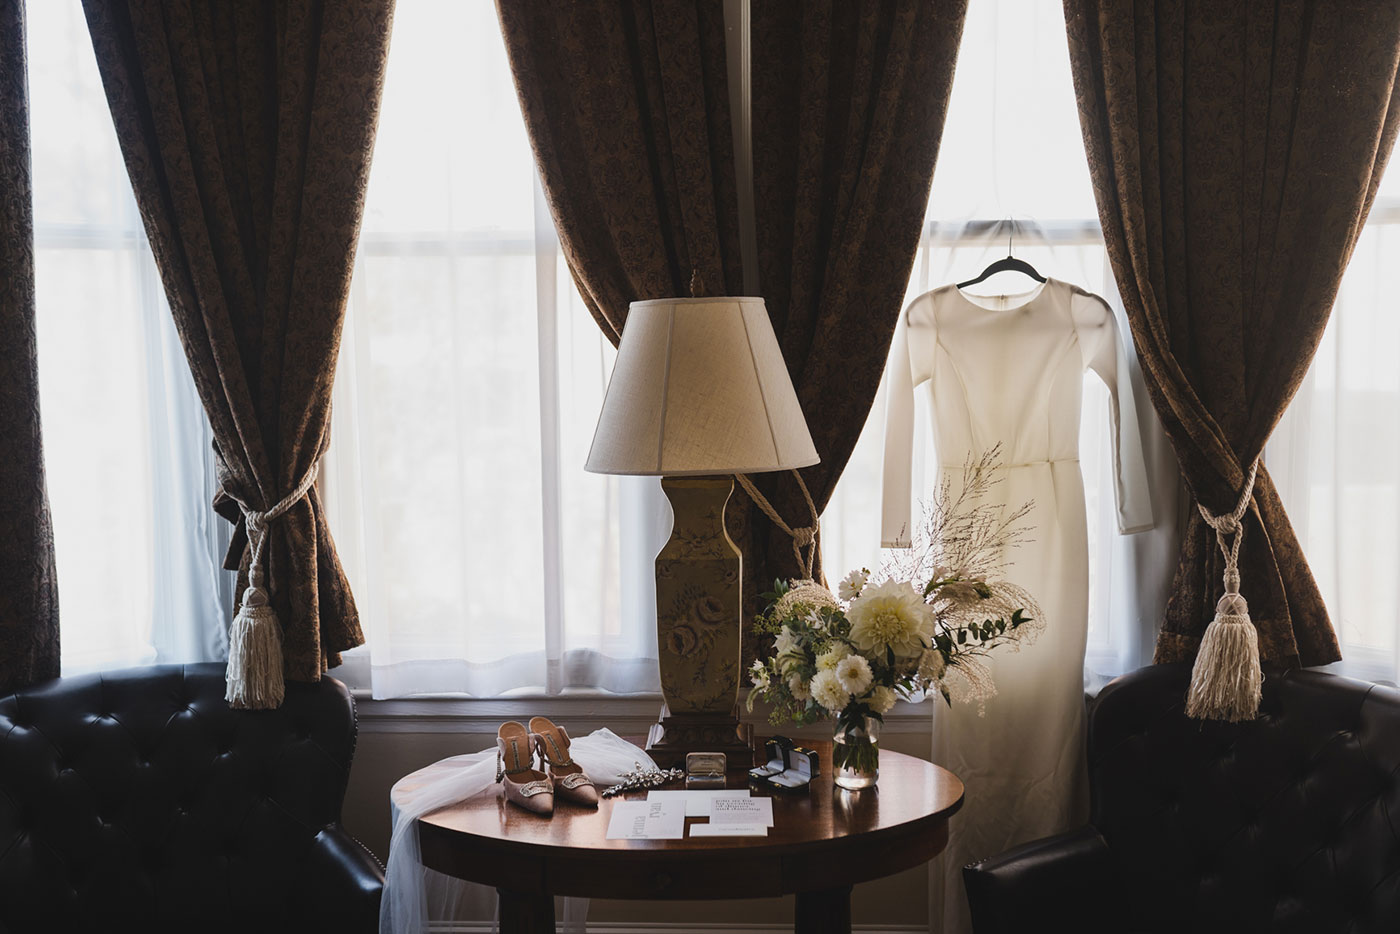 Bride's dress and details at Morris House Hotel by Weddings by Hanel